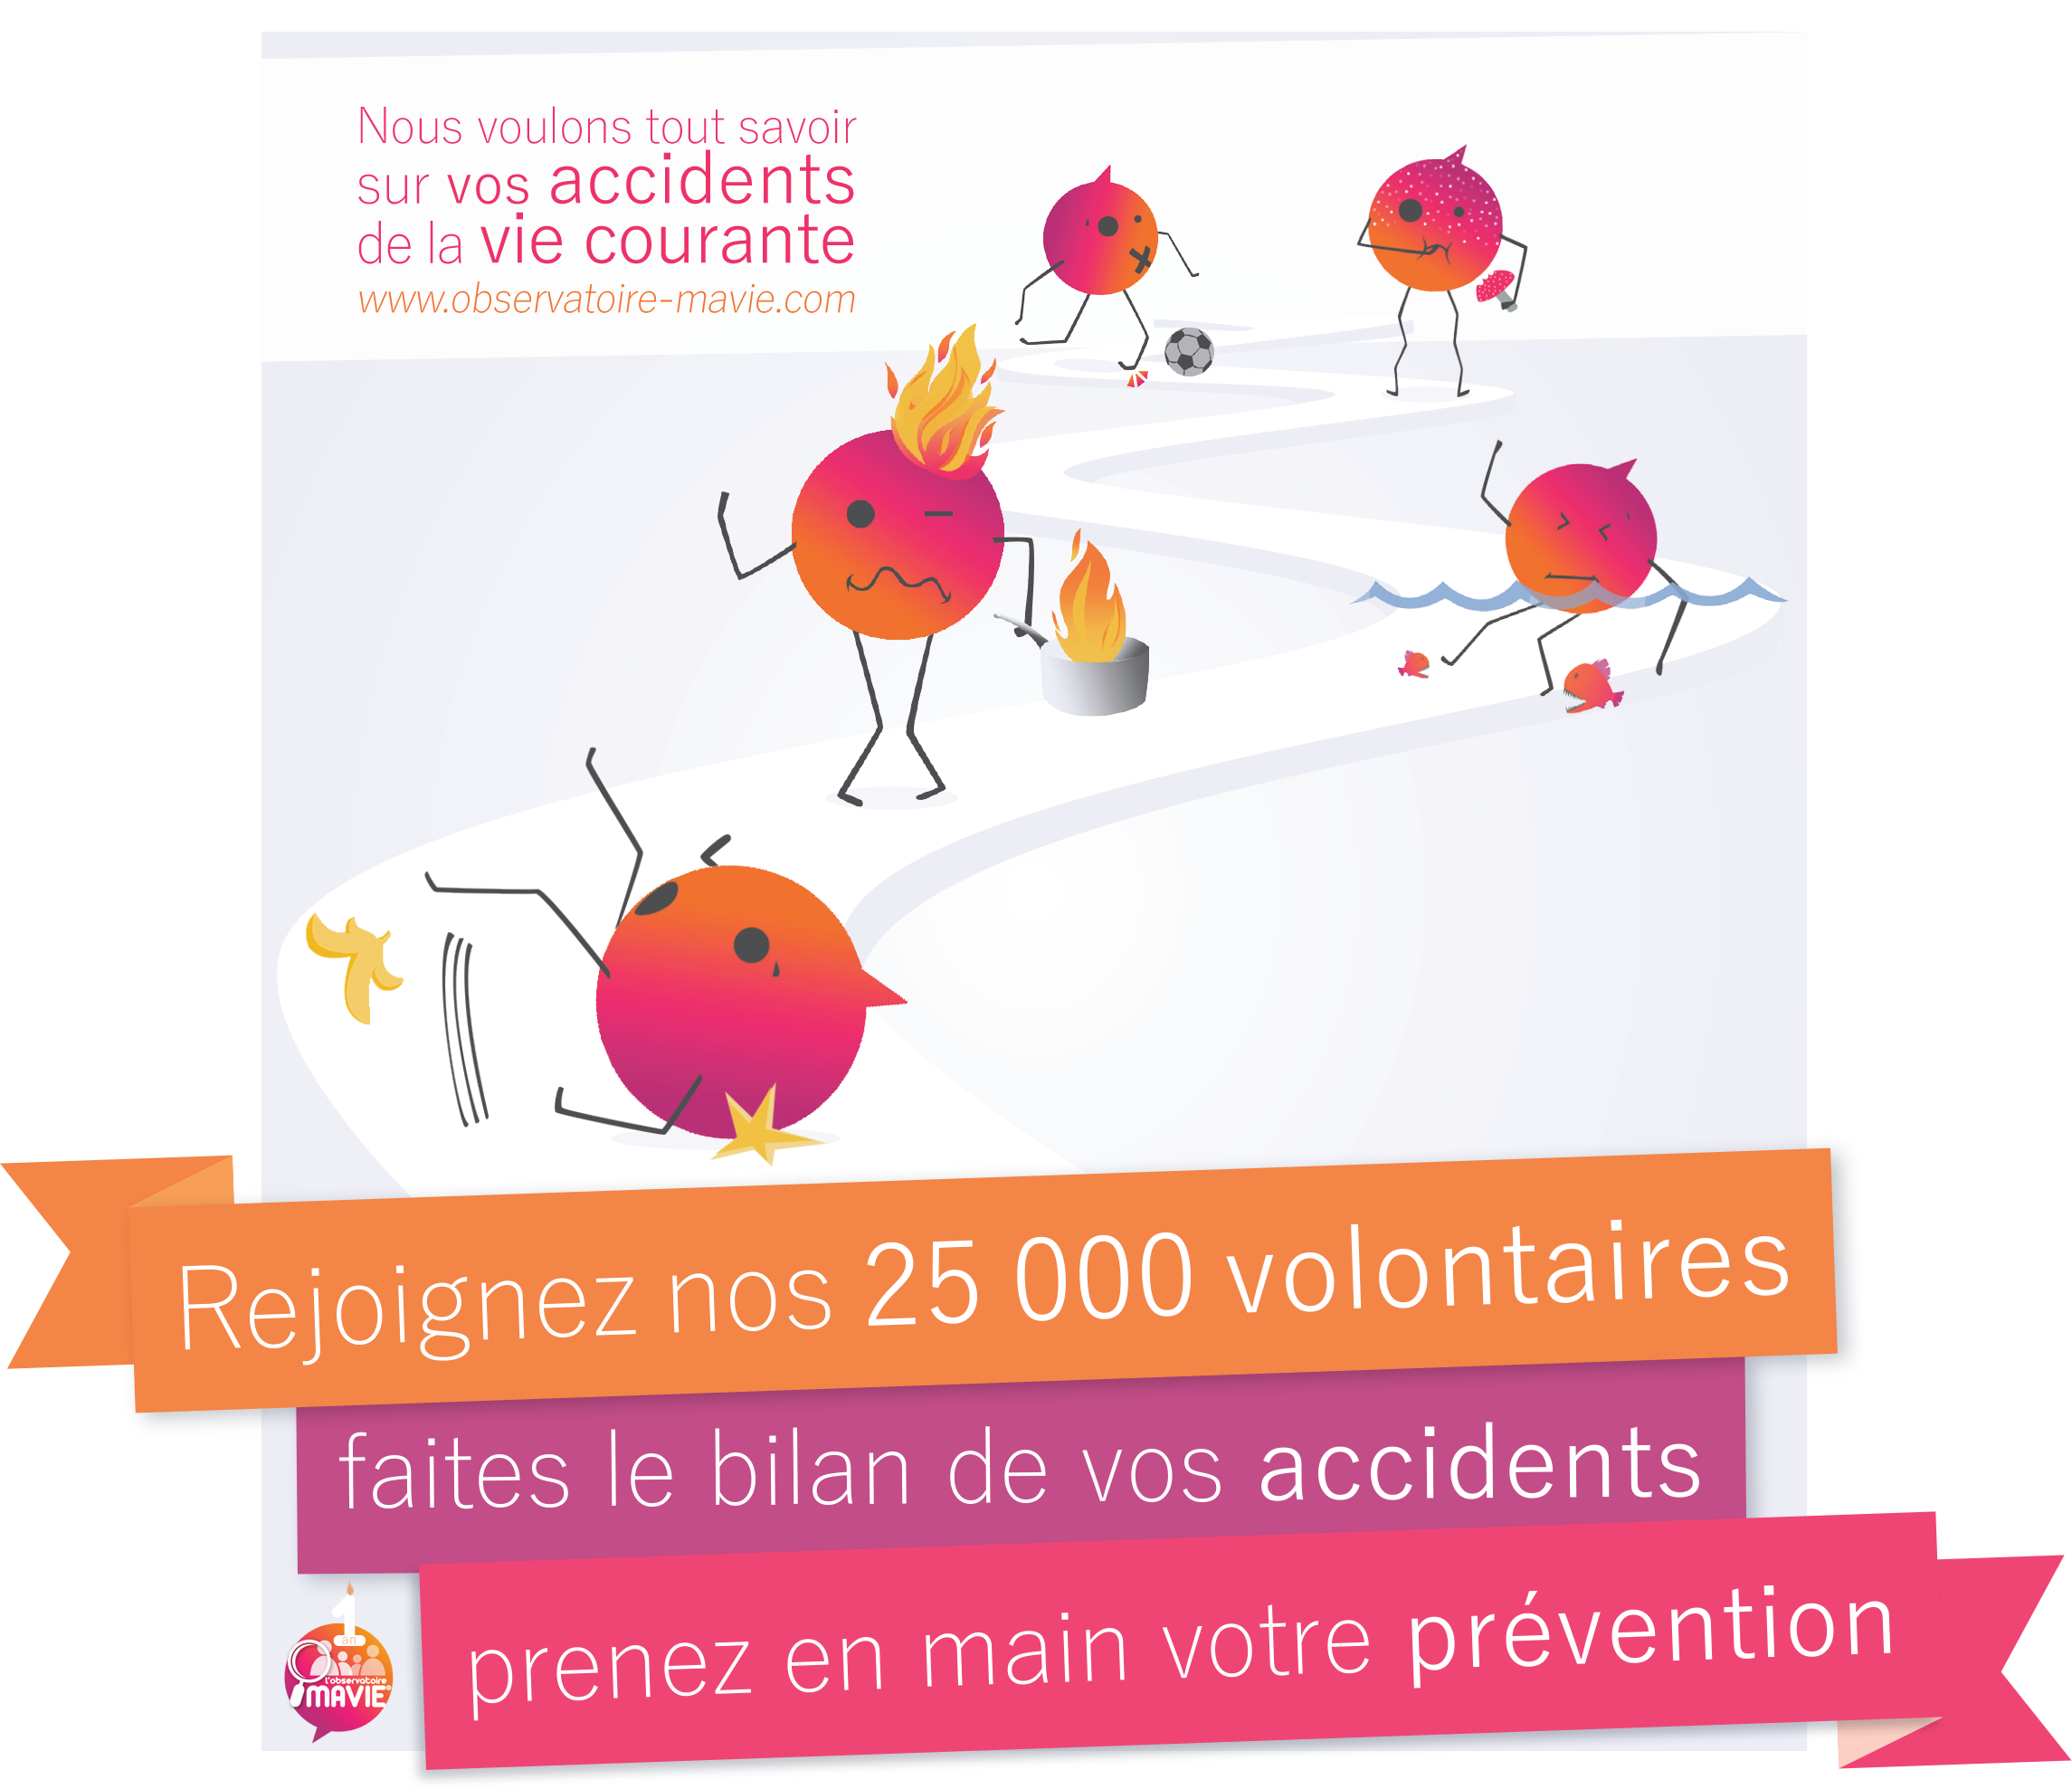 Illustration MAVIE, accidents de la vie courante, accidents domestiques, illustration observatoire MAVIE, participer à la recherche scientifique, devenir volontaire MAVIE, communication observatoire MAVIE, communication étude MAVIE, aider la recherche, recherche accidents, accidentologie